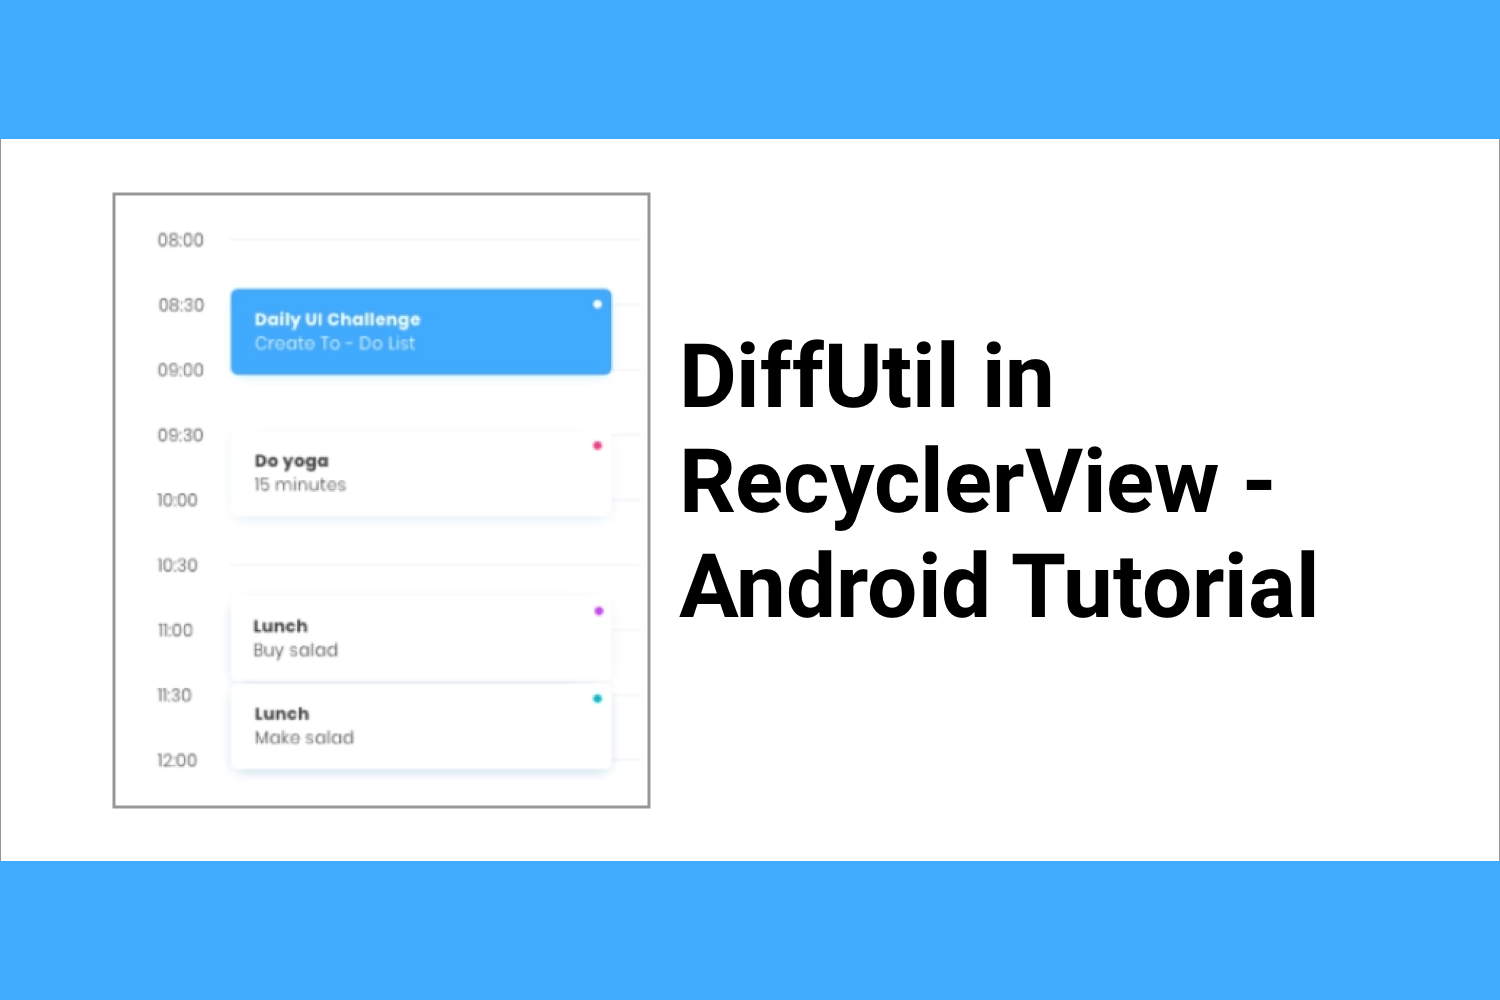 The powerful tool DiffUtil in RecyclerView - Android Tutorial